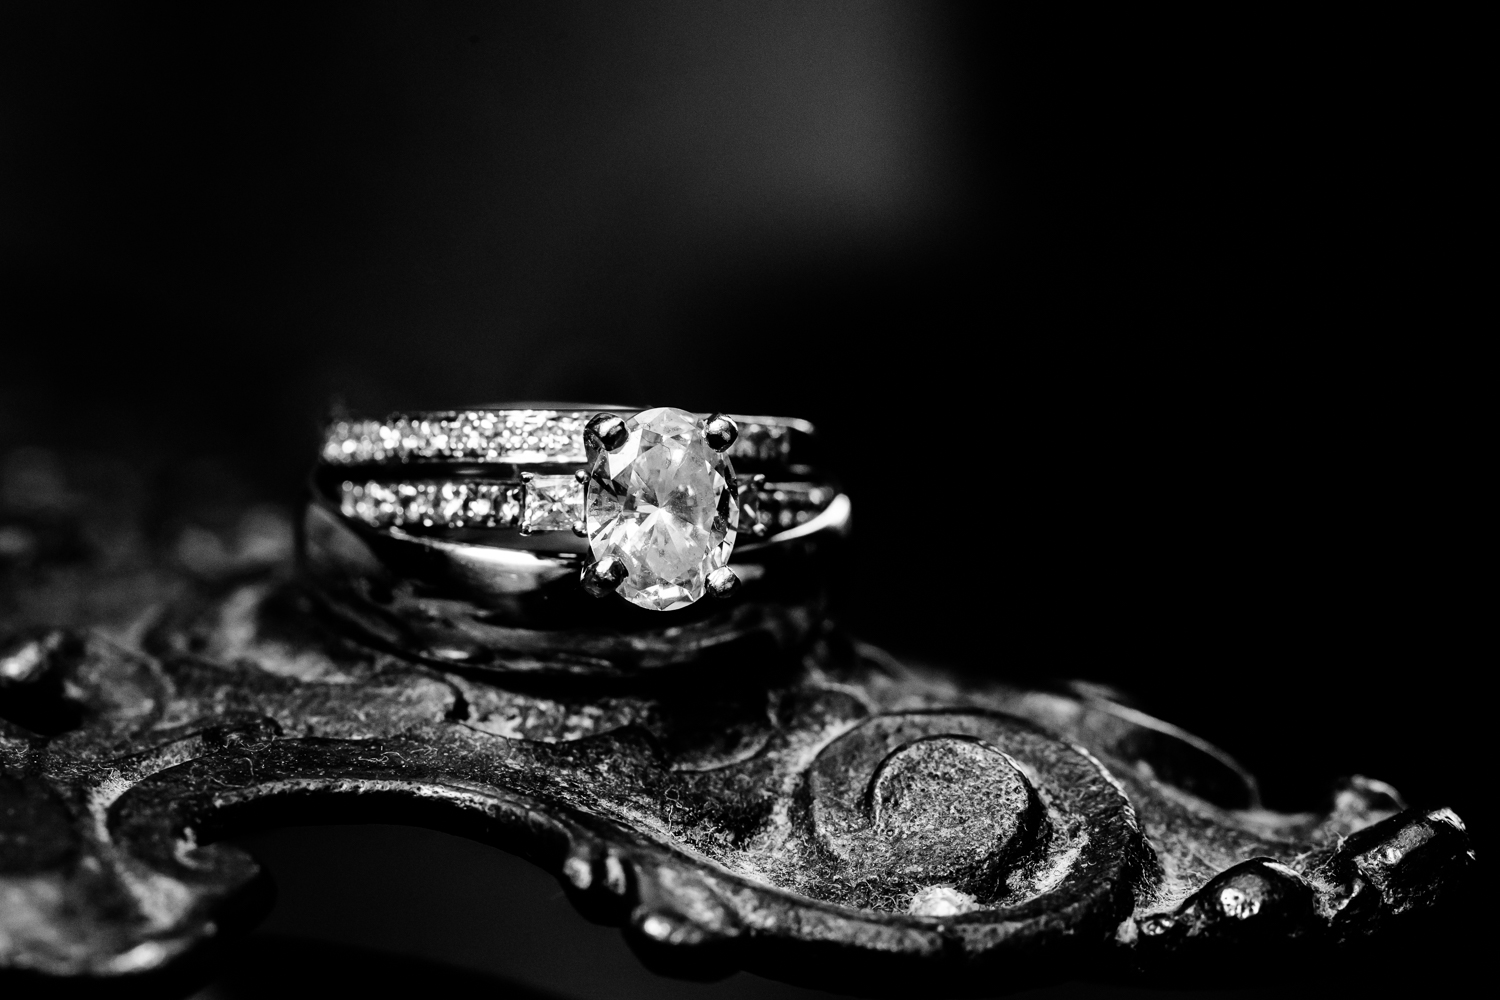 Diamond wedding ring macro shot